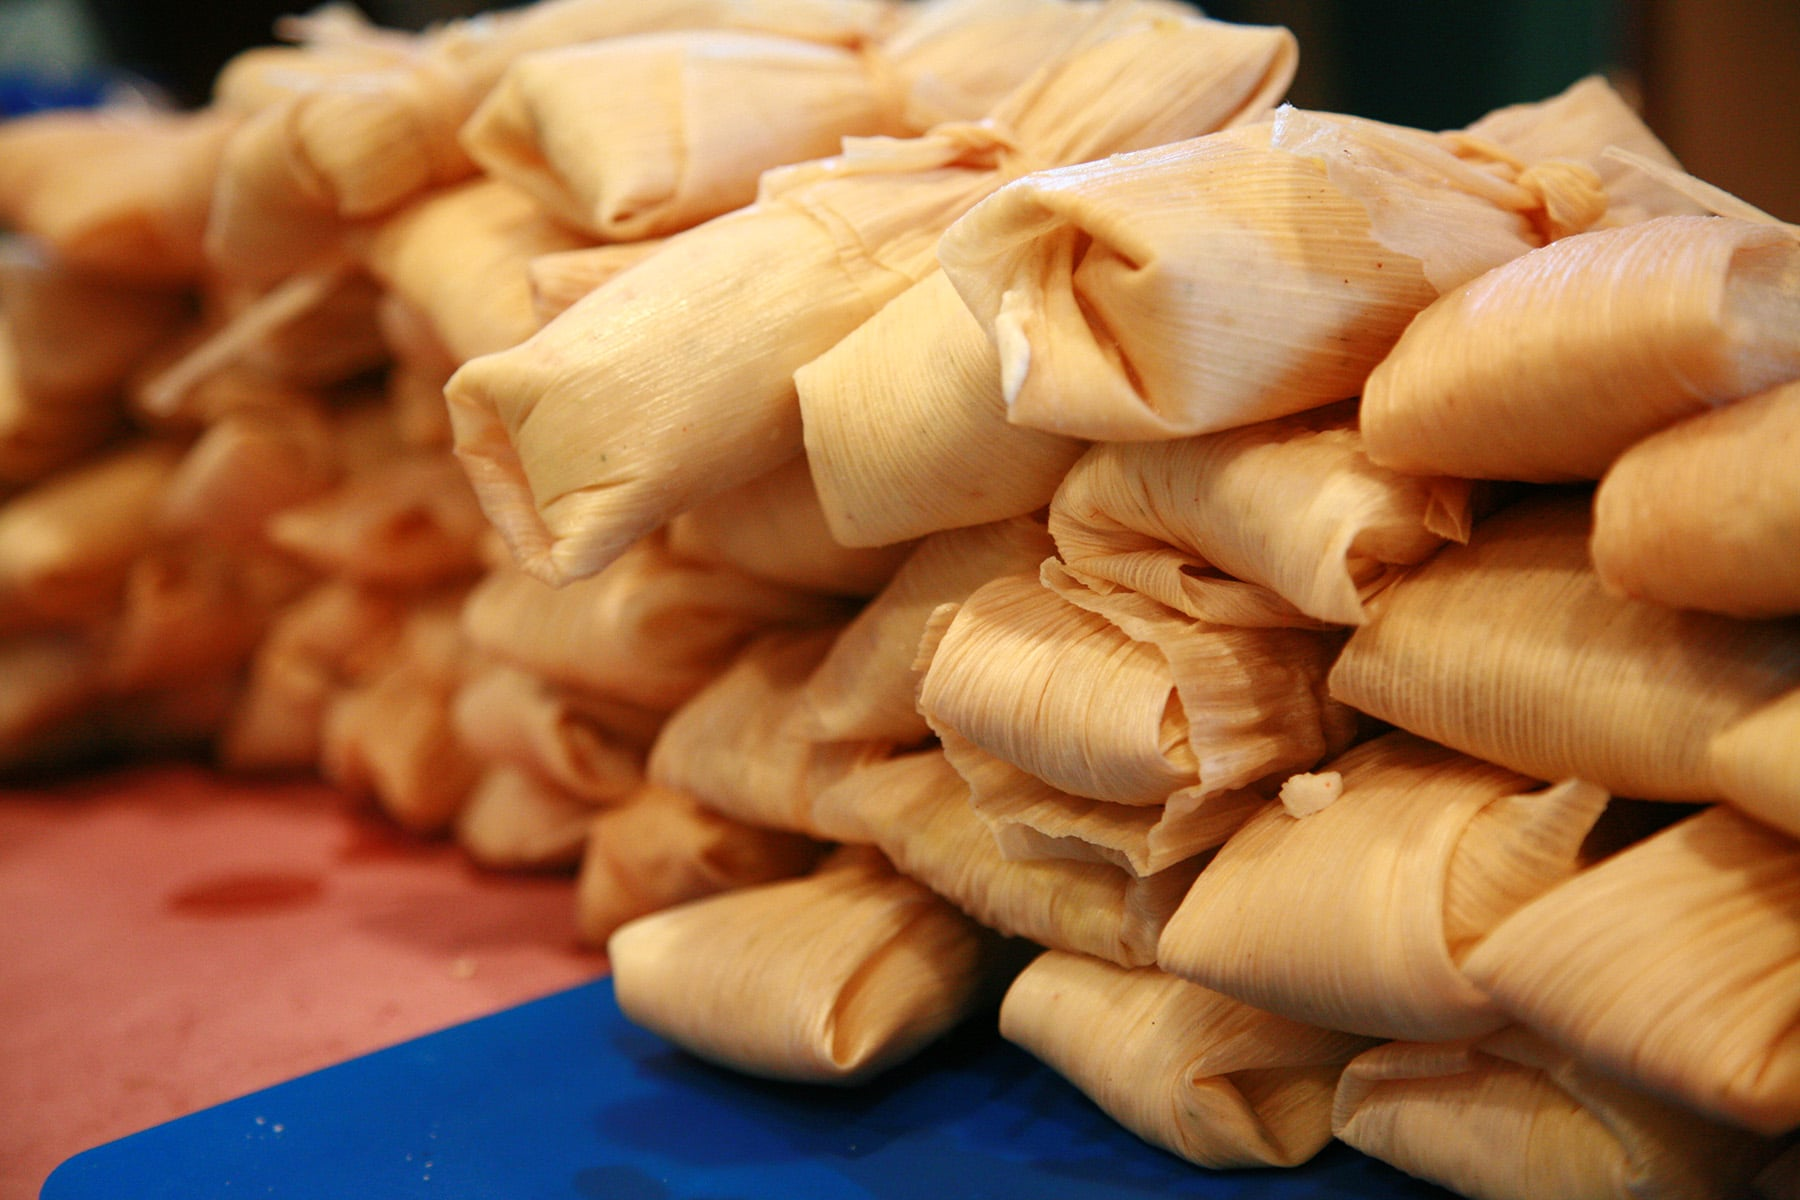 A close up view of a large pile of wrapped tamales on a work table.